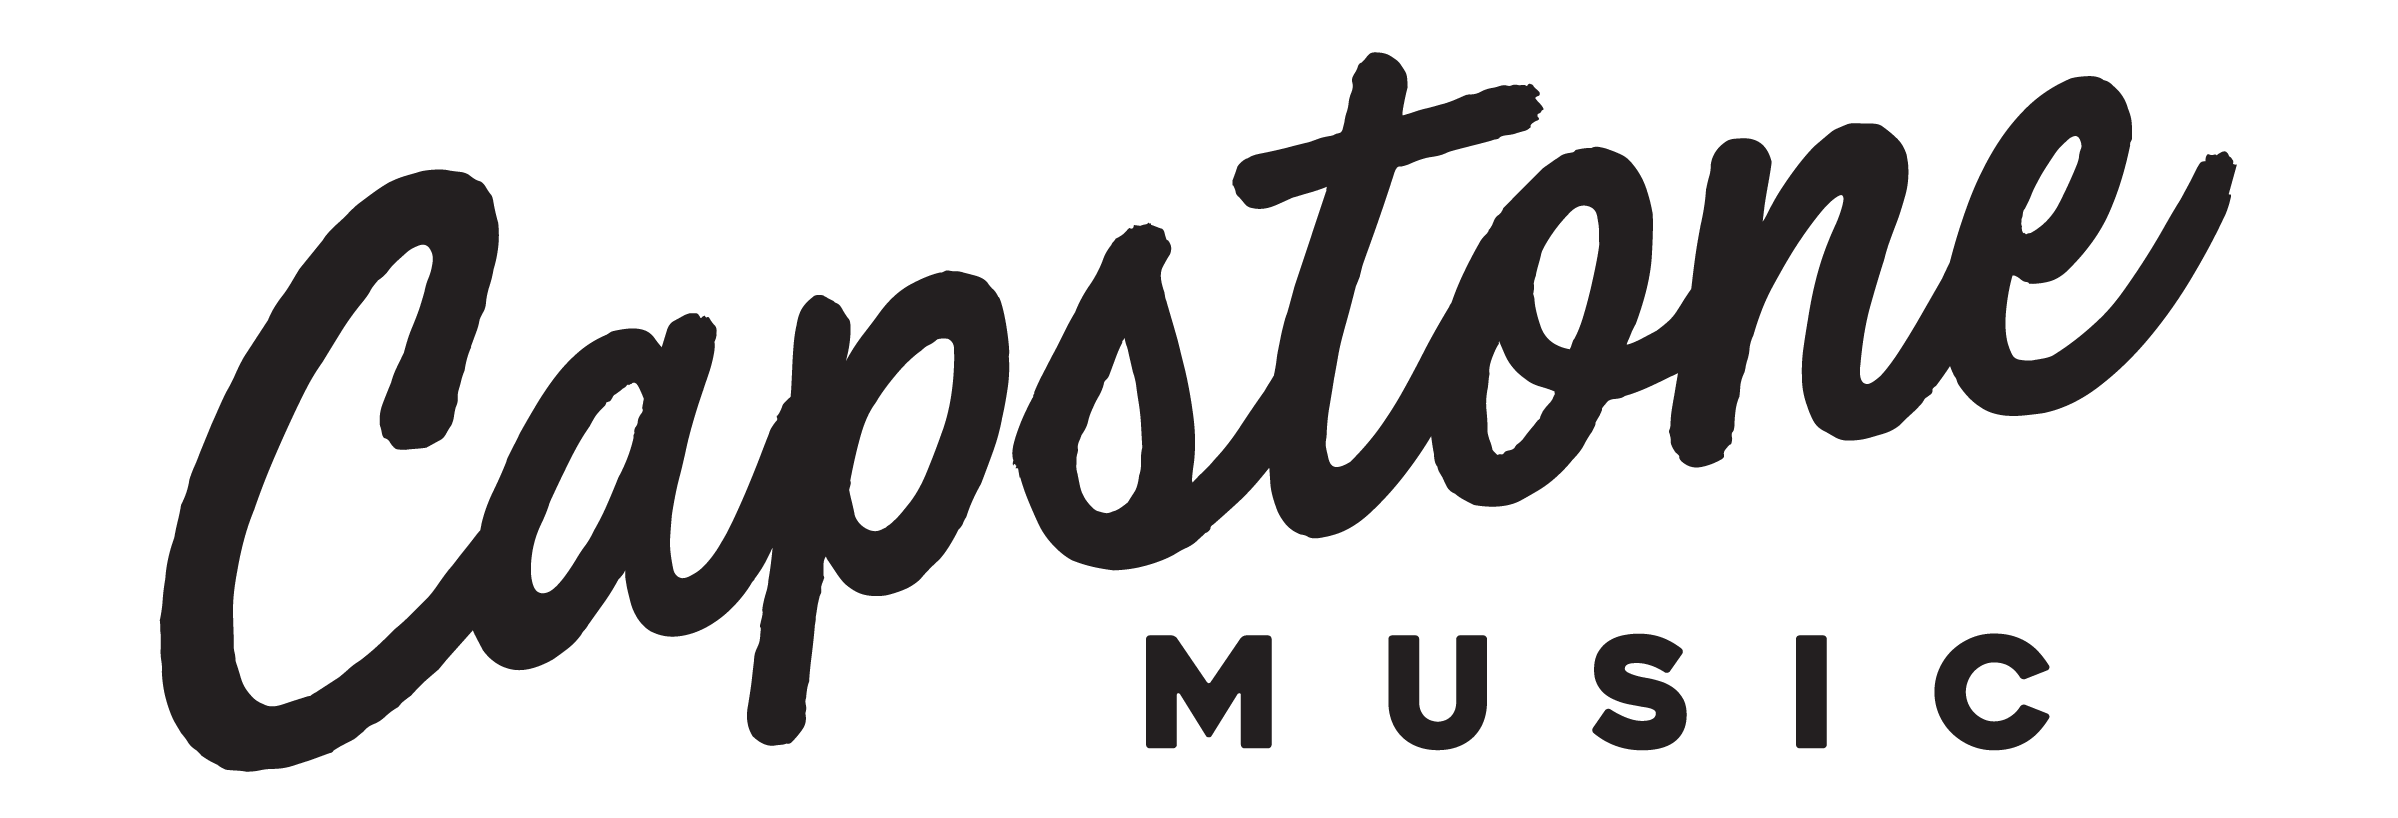 Capstone Music Burlington Ontario